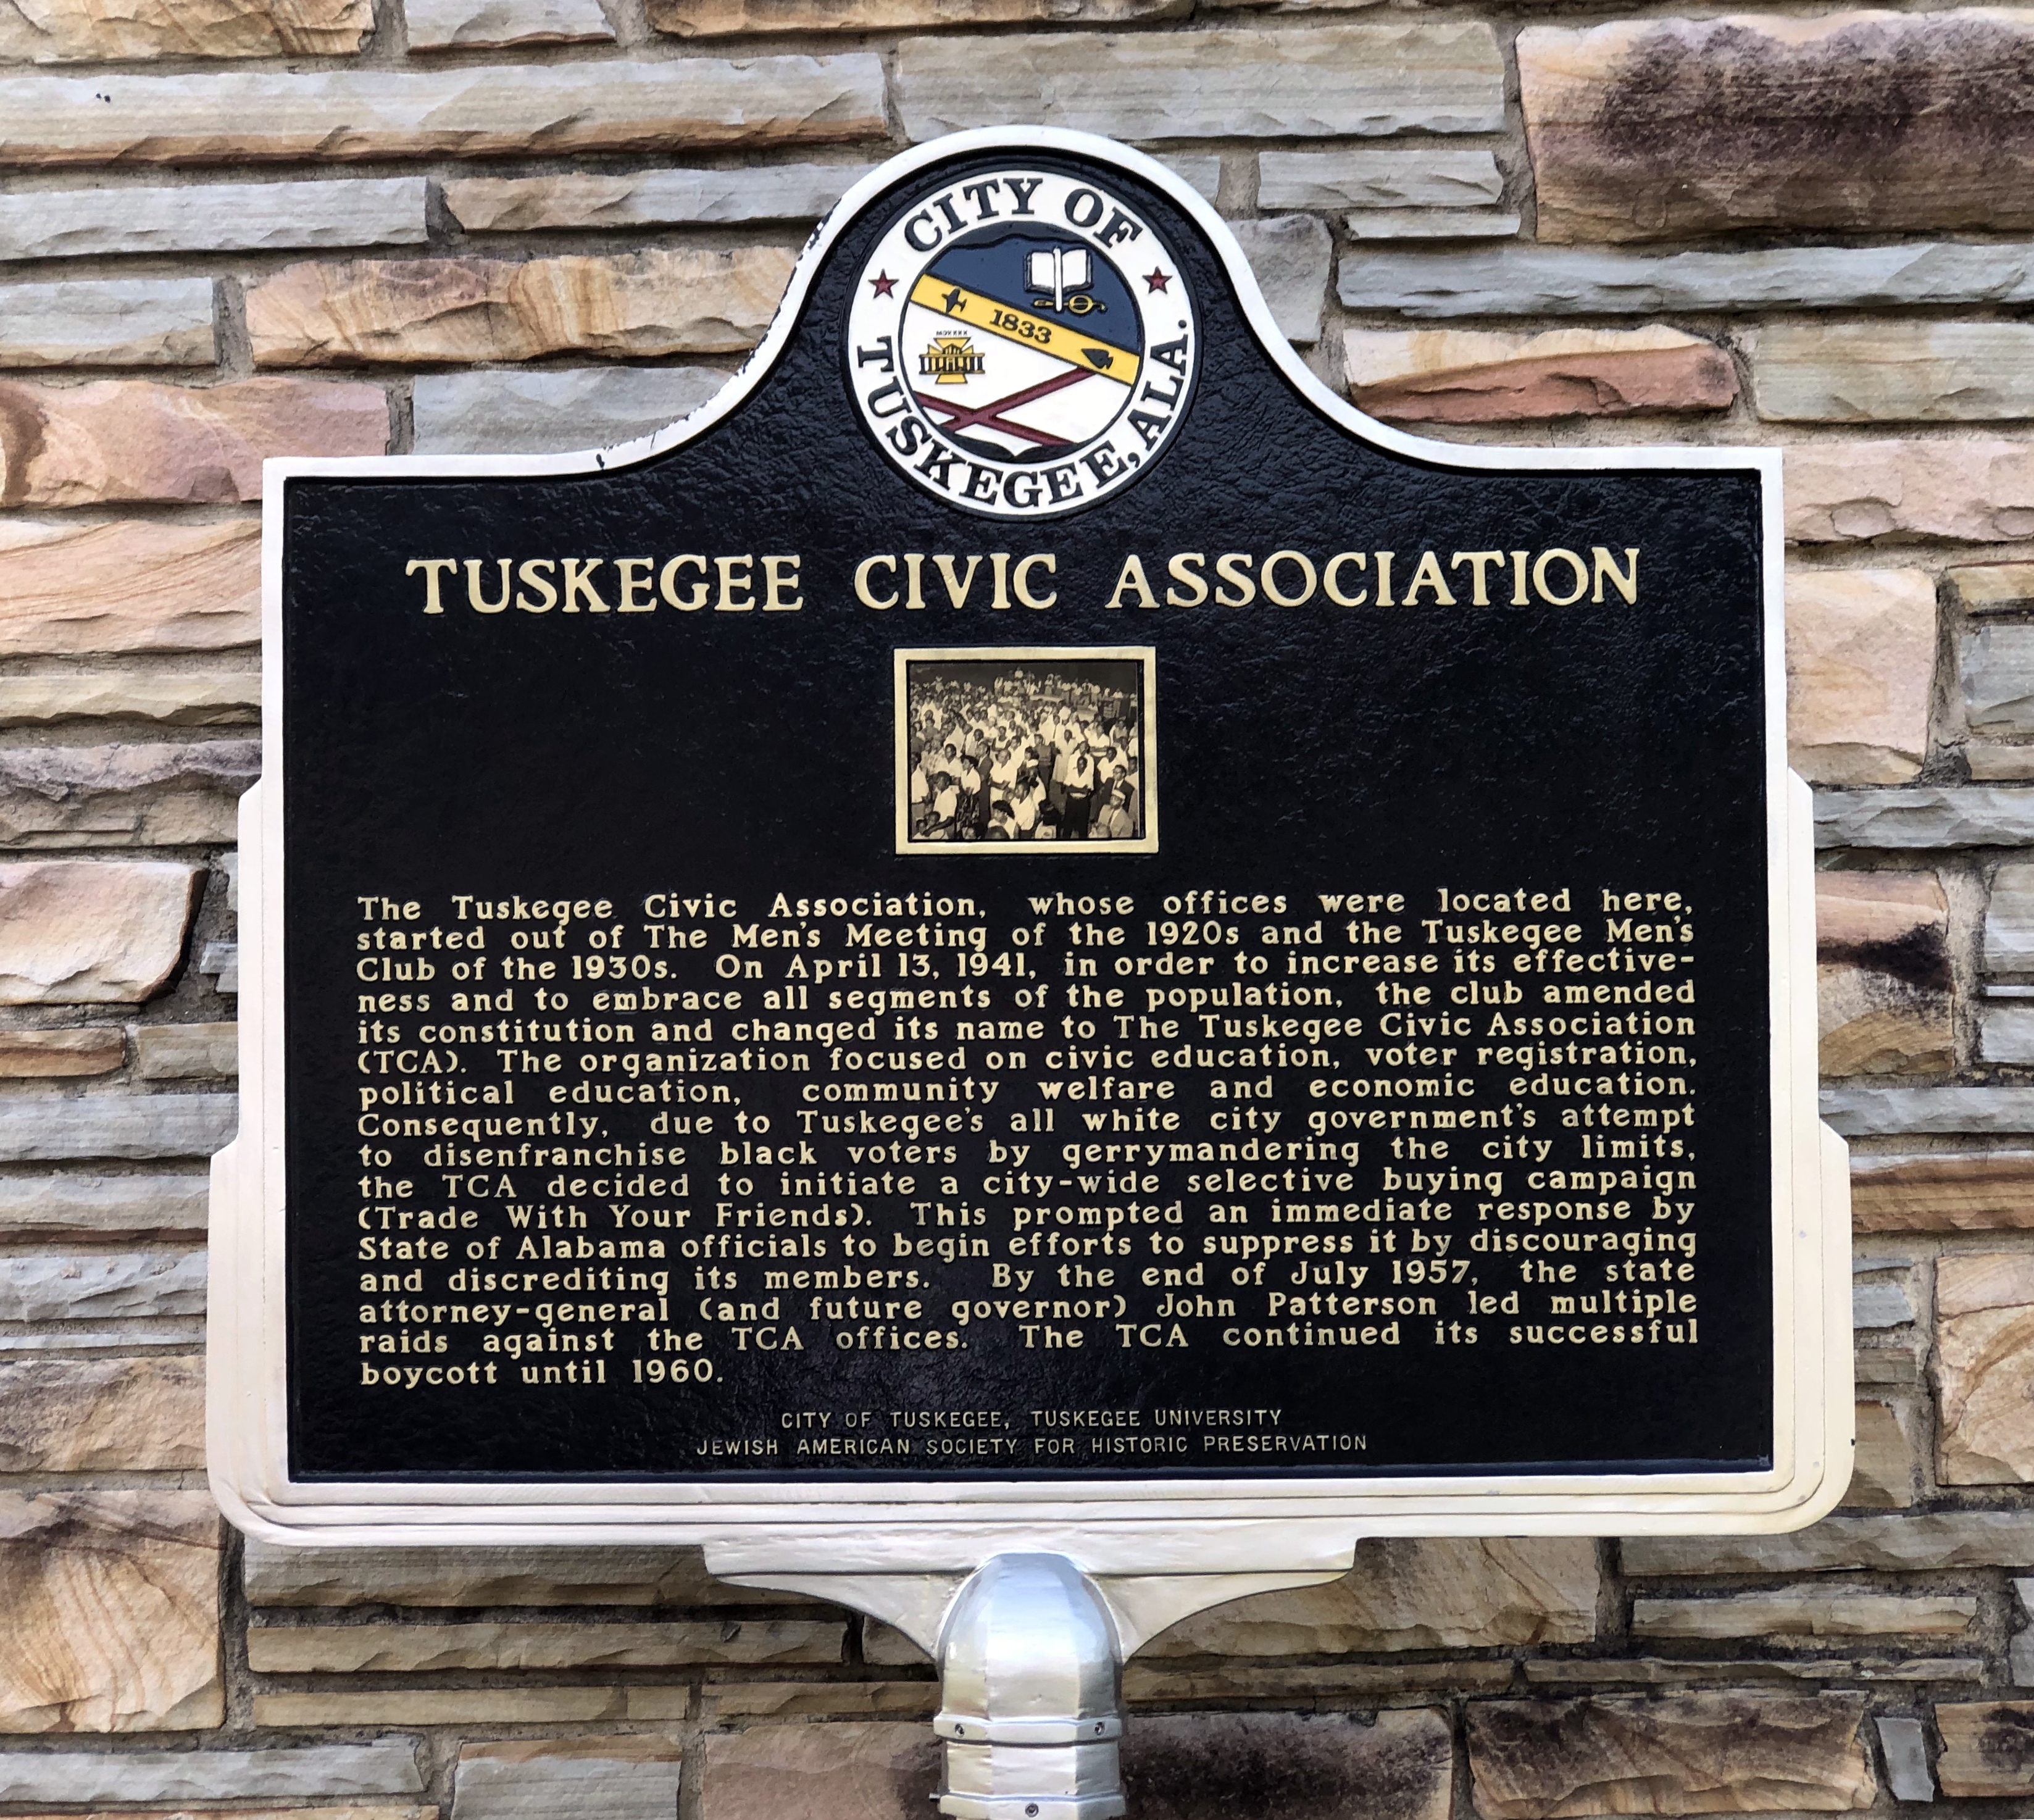 Tuskegee Civic Association Marker